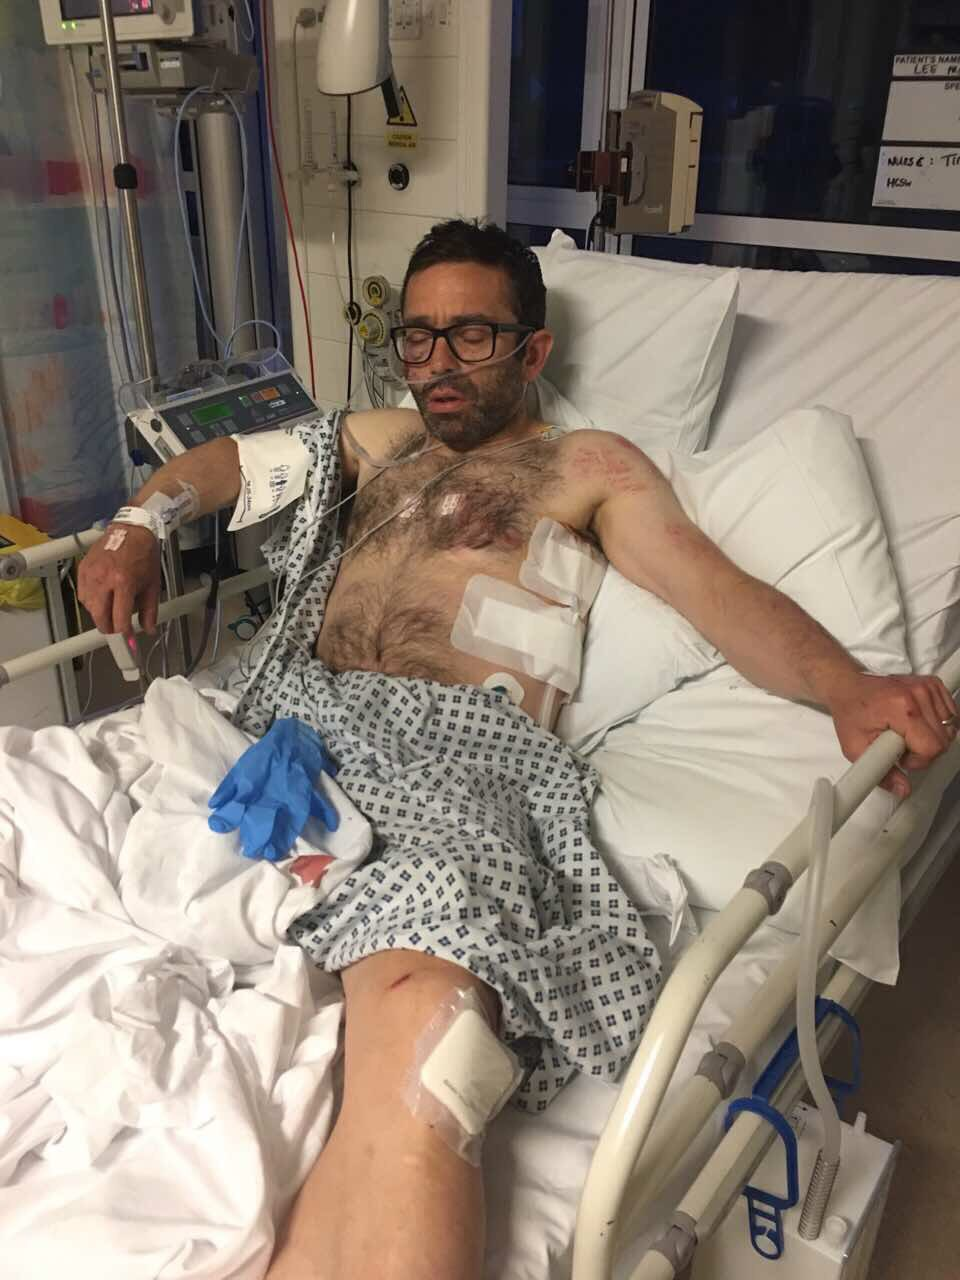 @cyclingweekly  https://t.co/kvUySayxTF please RT it's me and it almost killed me! https://t.co/hE560xpt4R